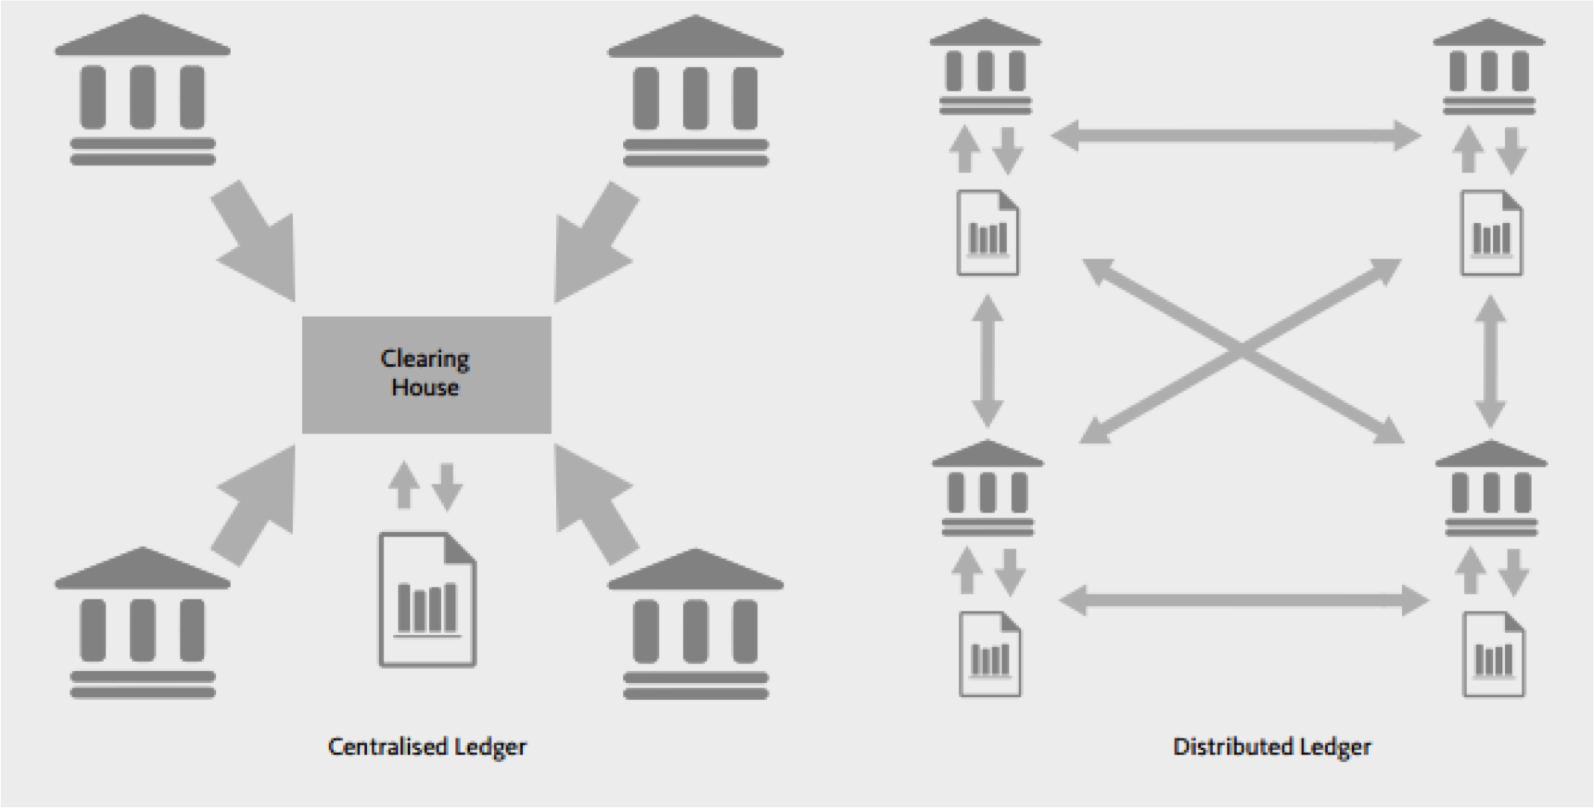 centralized vs distributed ledger